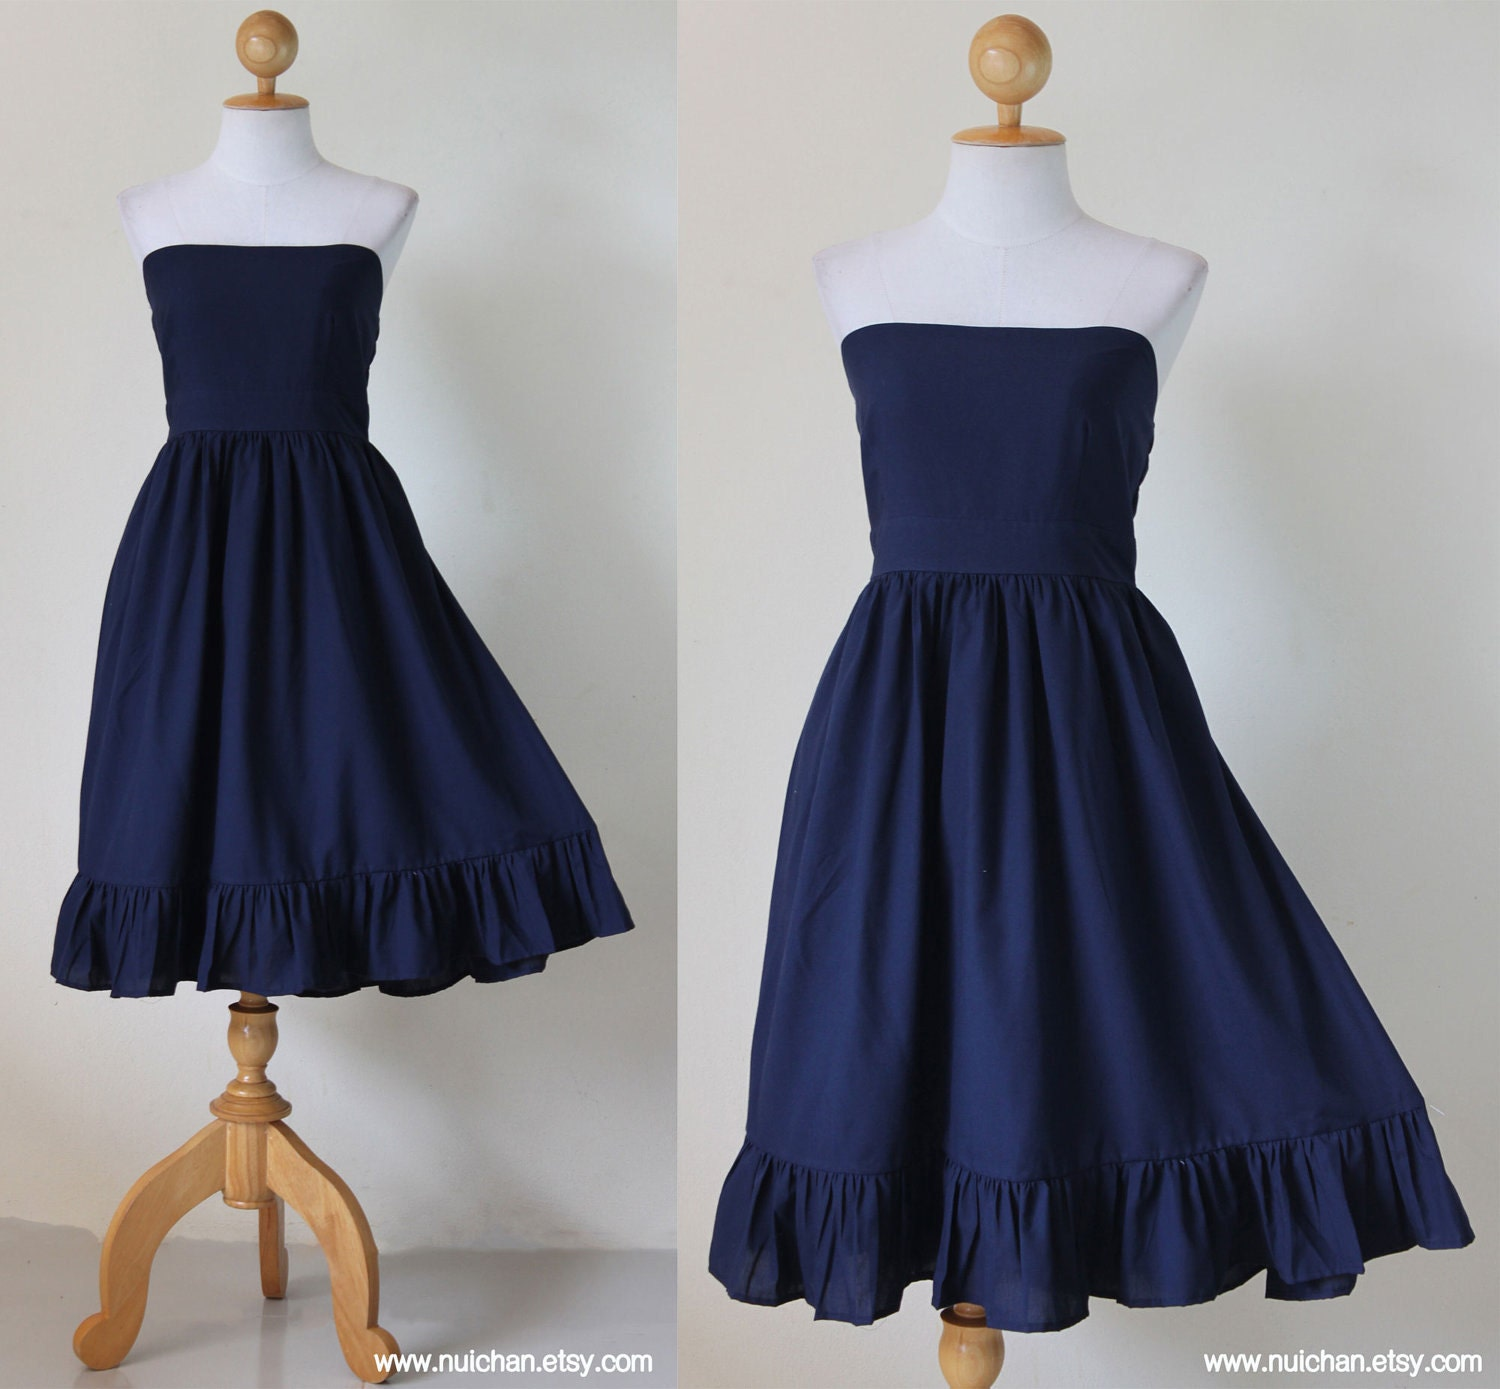 Navy blue short dress strapless wedding prom party cotton for Navy blue dresses for weddings